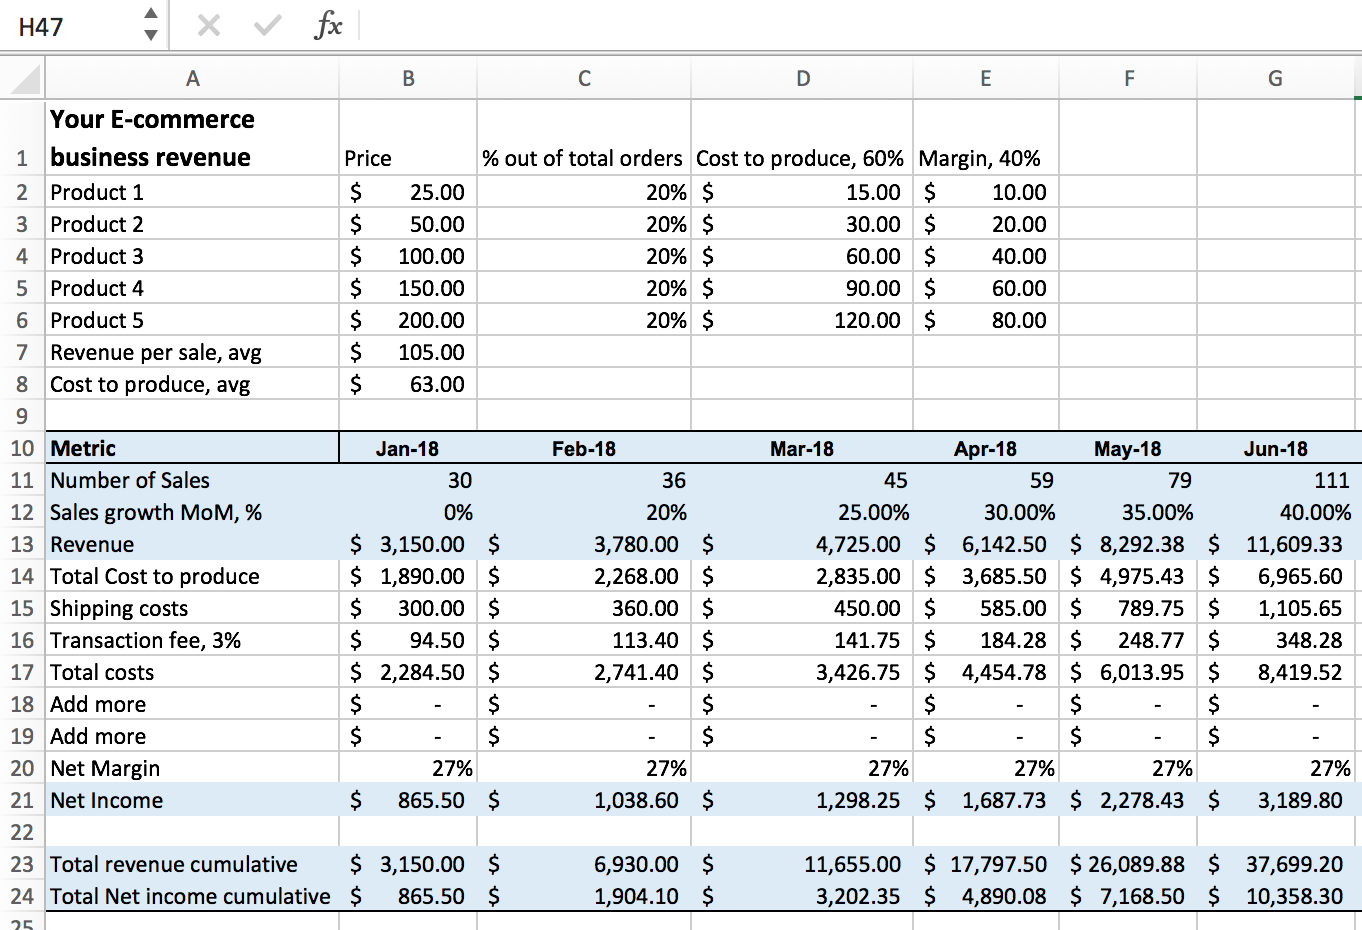 Saas Pricing Model Spreadsheet For Excel For Startups: Simple Financial Models And Dashboards